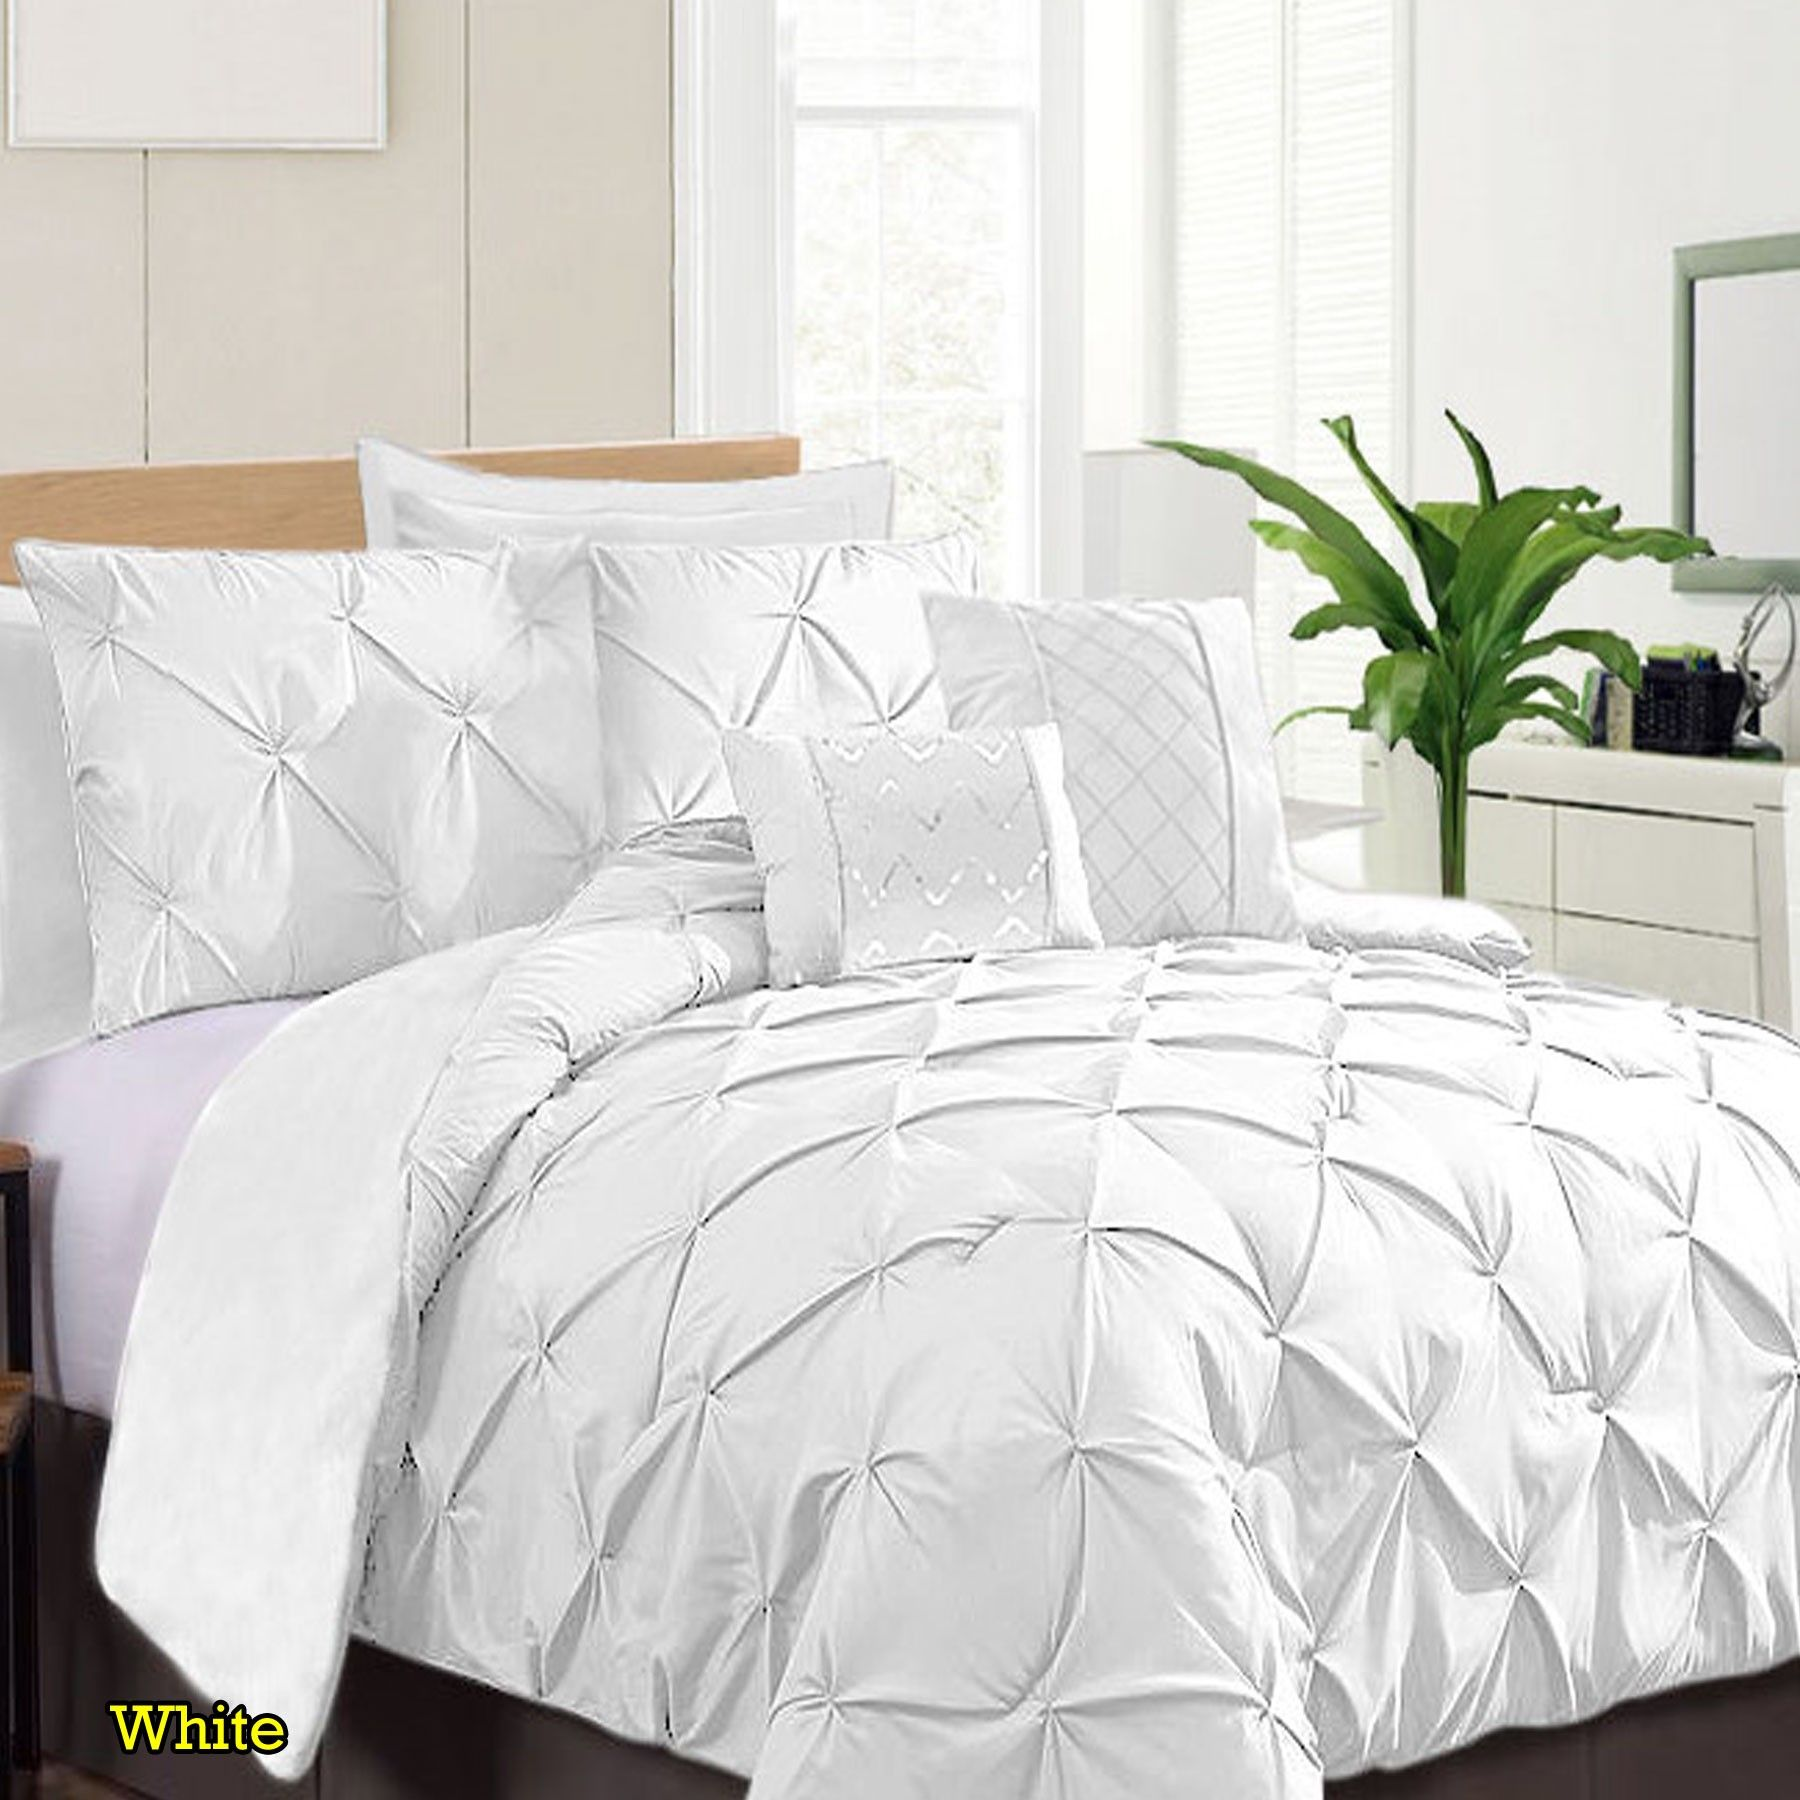 7 Piece Pinch Pleat Comforter Set White By Ramesses Comforters